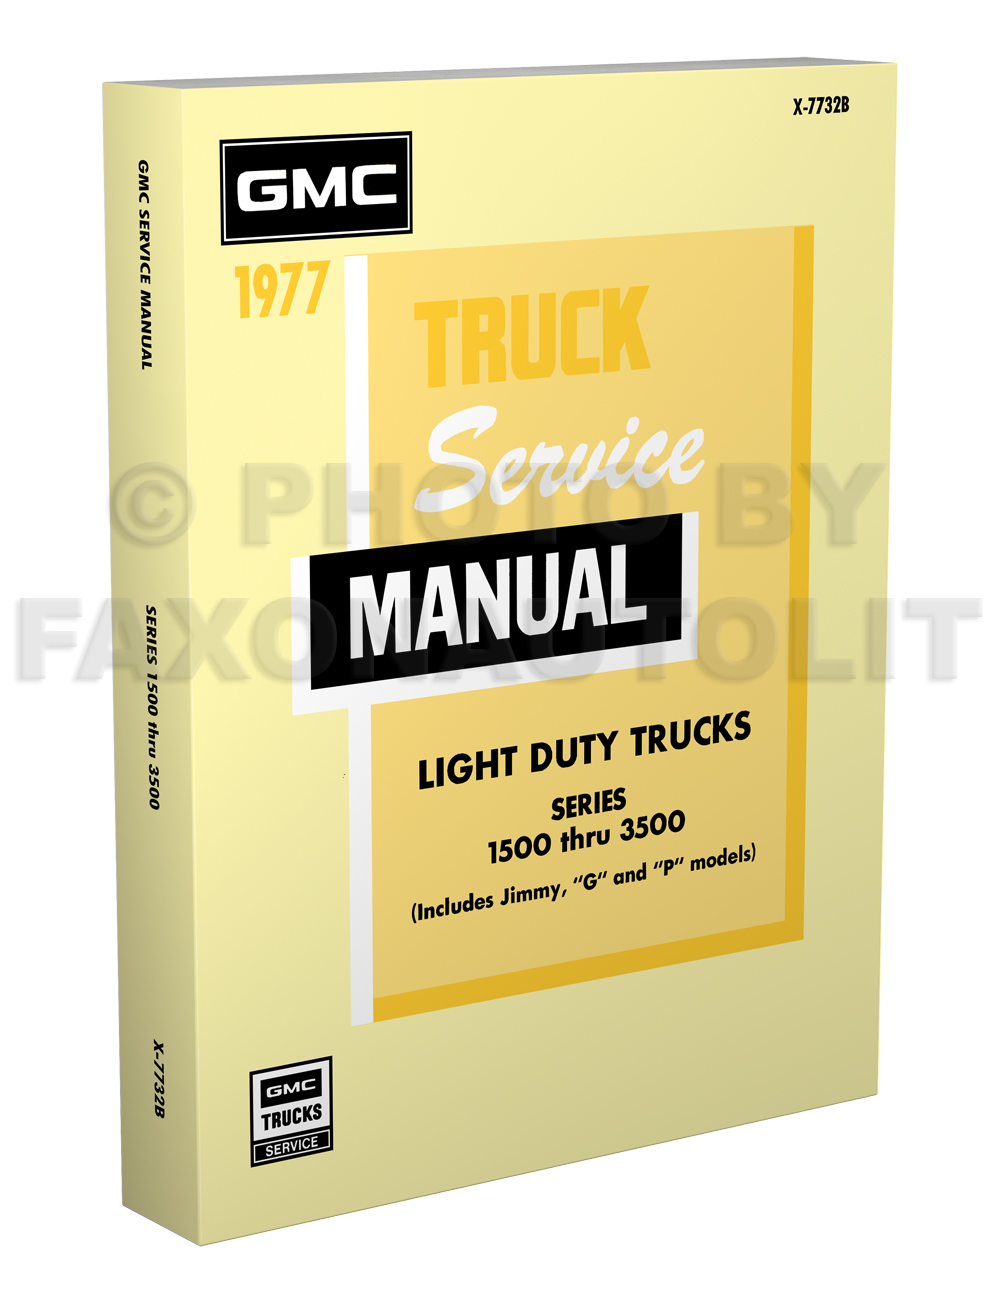 1977 GMC Truck 1500-3500 Repair Shop Manual Reprint Pickup Jimmy Suburban FC